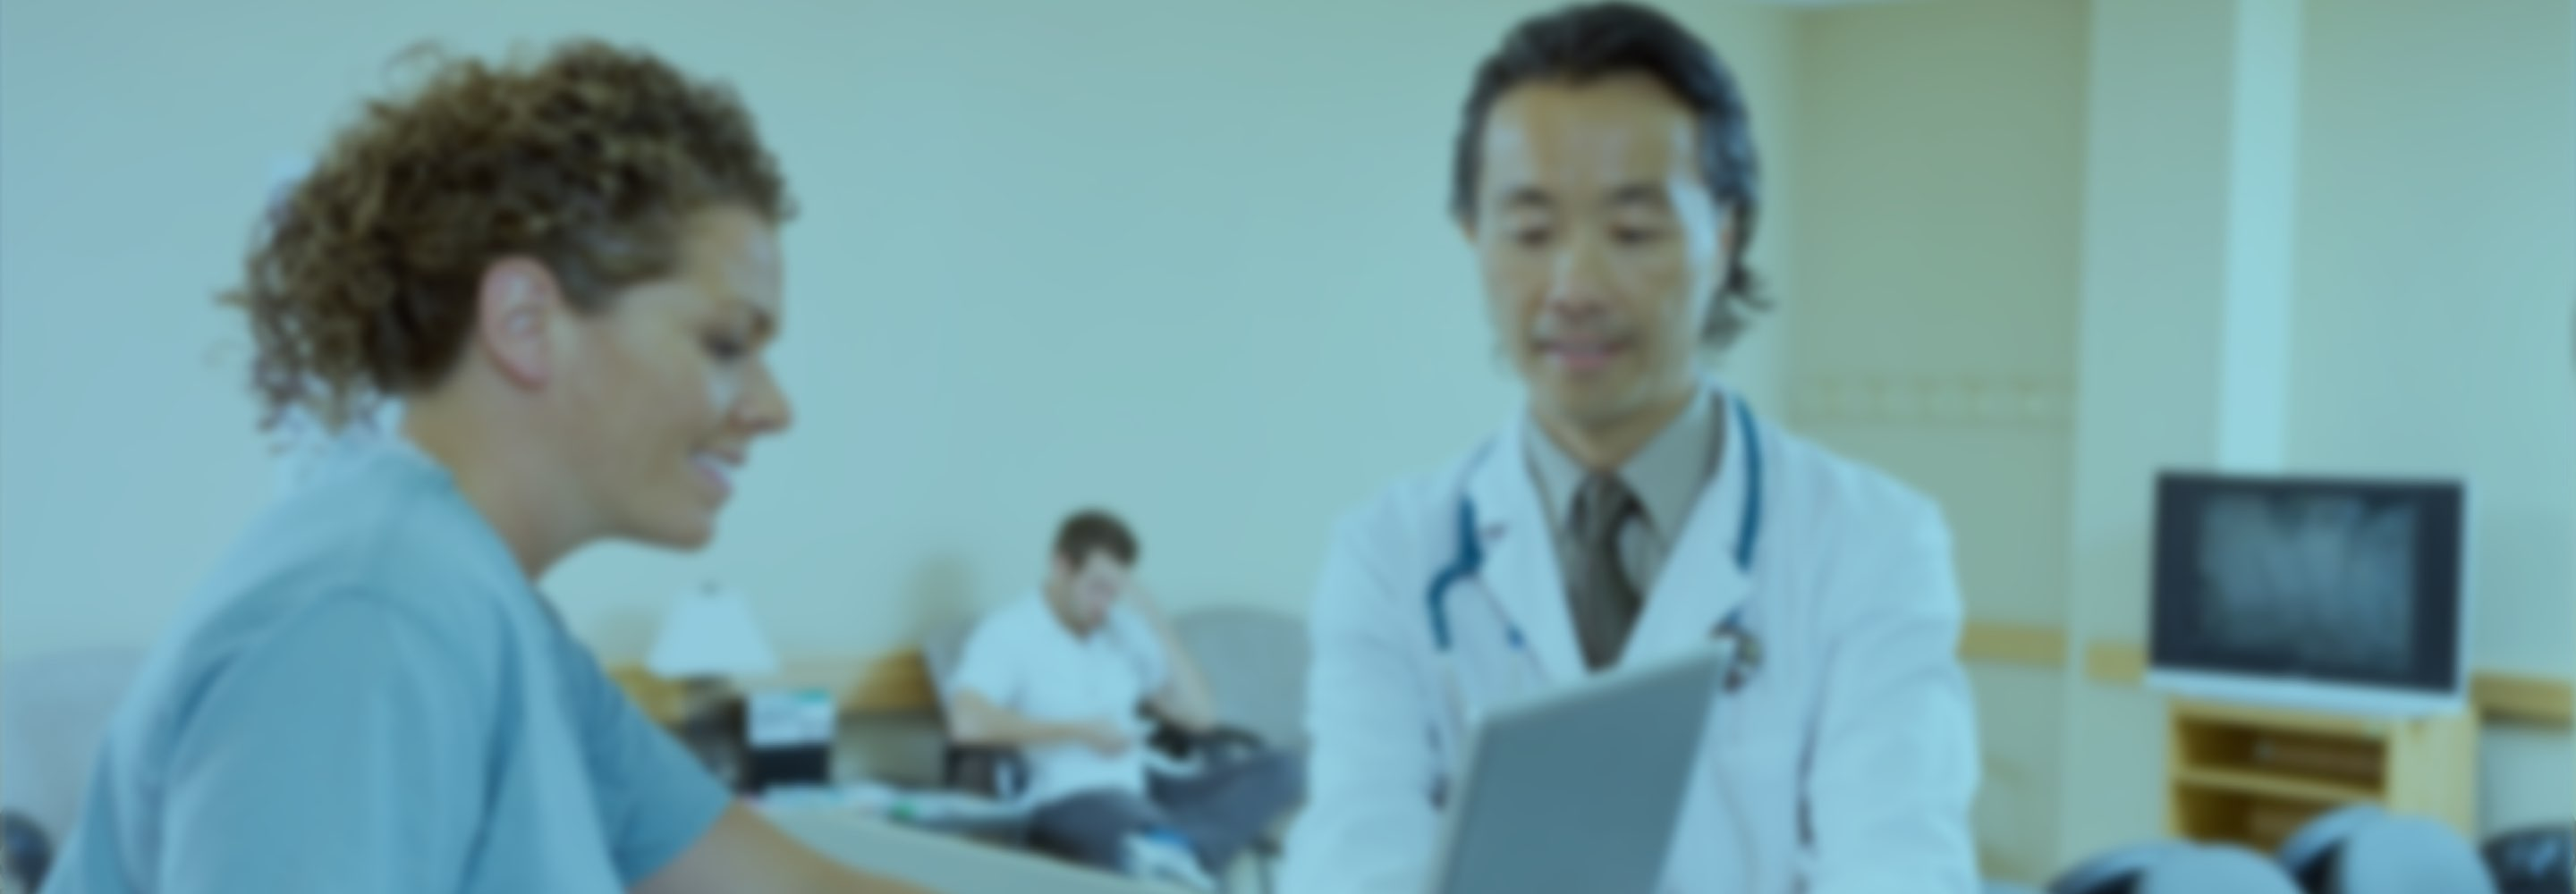 See how GoFormz helps companies throughout the Healthcare industry save time, reduce errors and work efficiently.